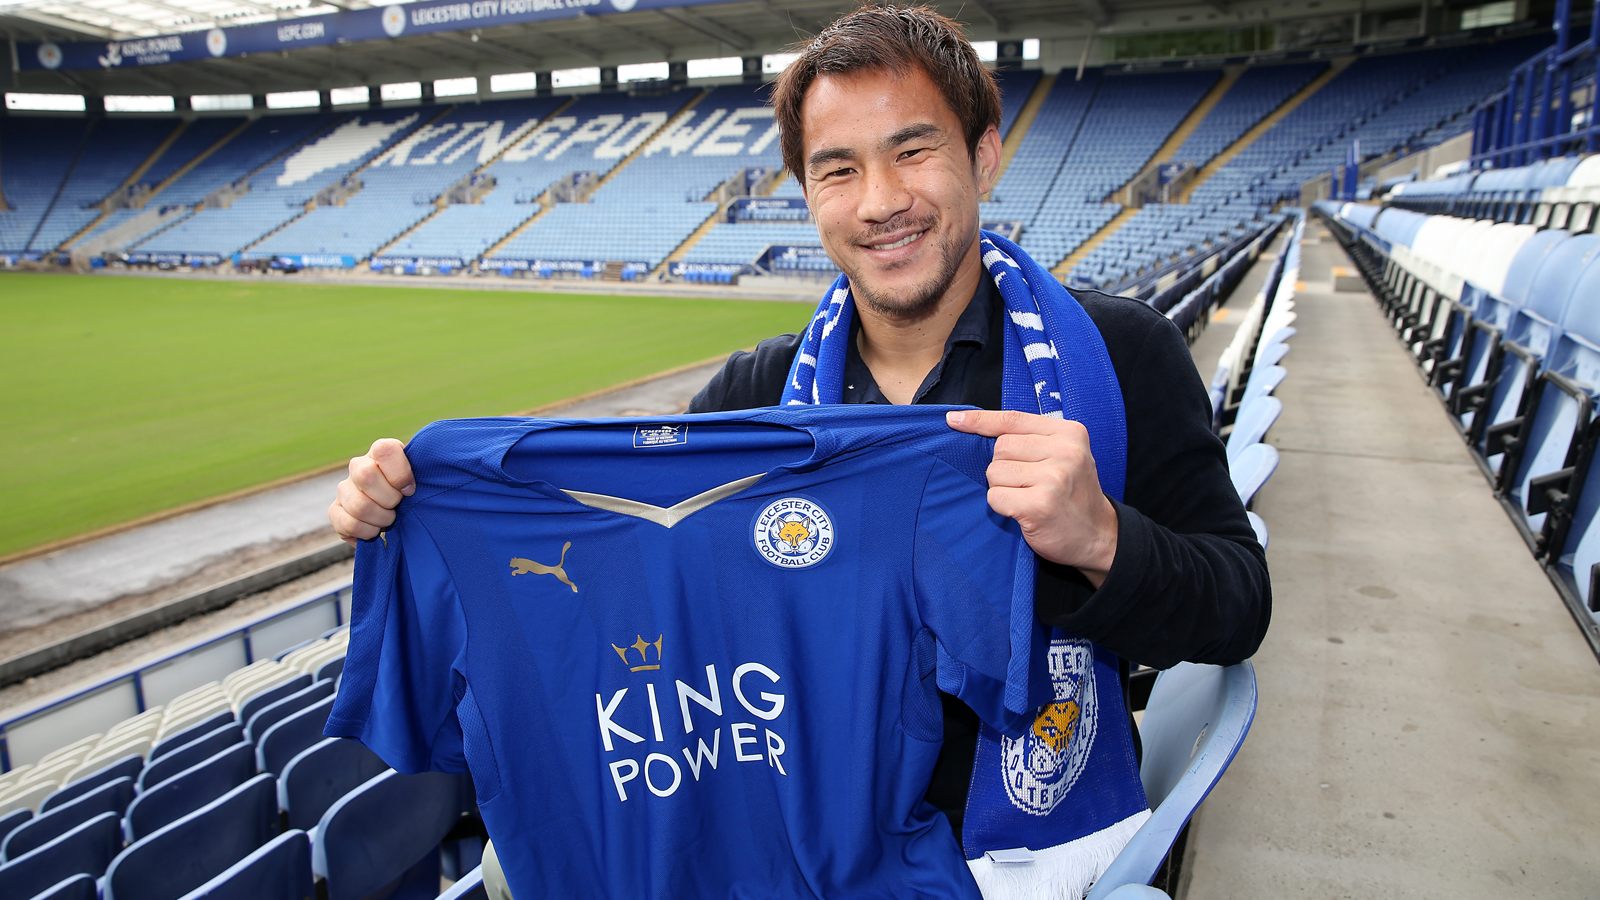 King Power Group | Leicester City F.C. Thailand Campaign- Shinji Okazaki